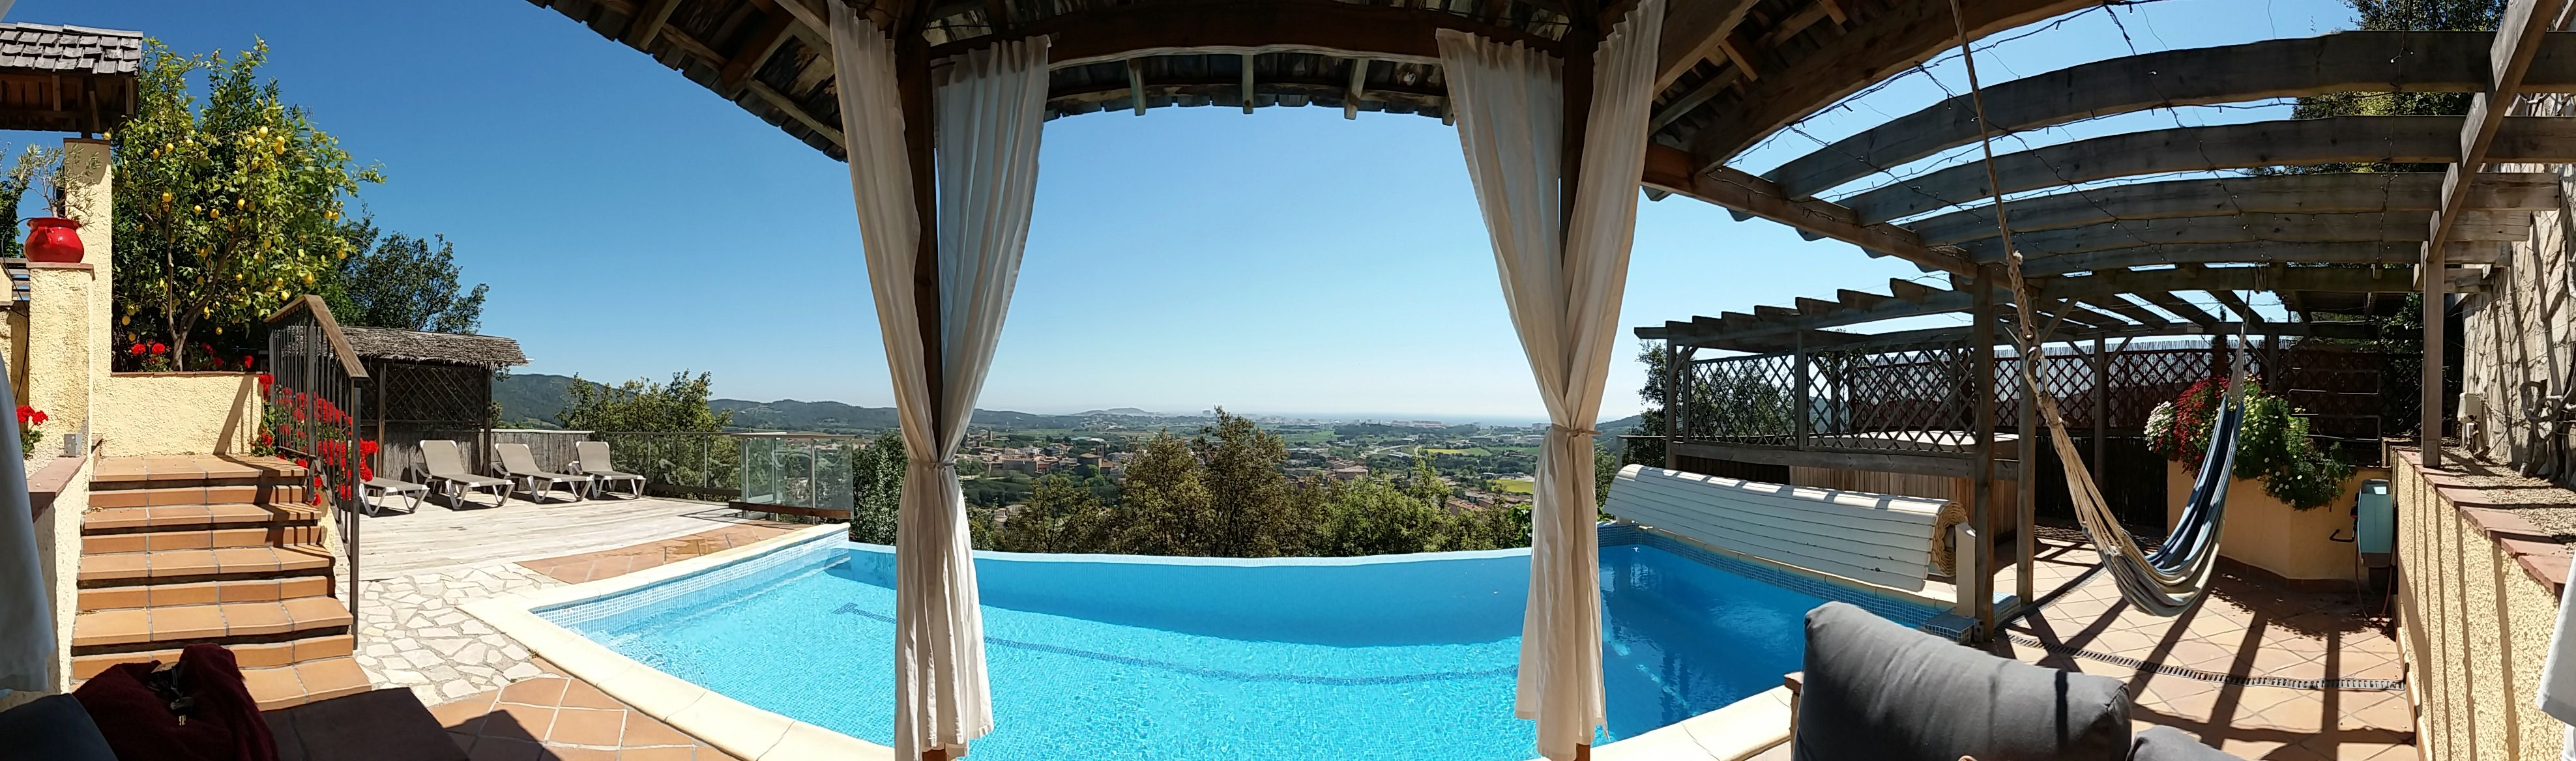 Pool Terrace With Views Rental Villa Ownersdirect